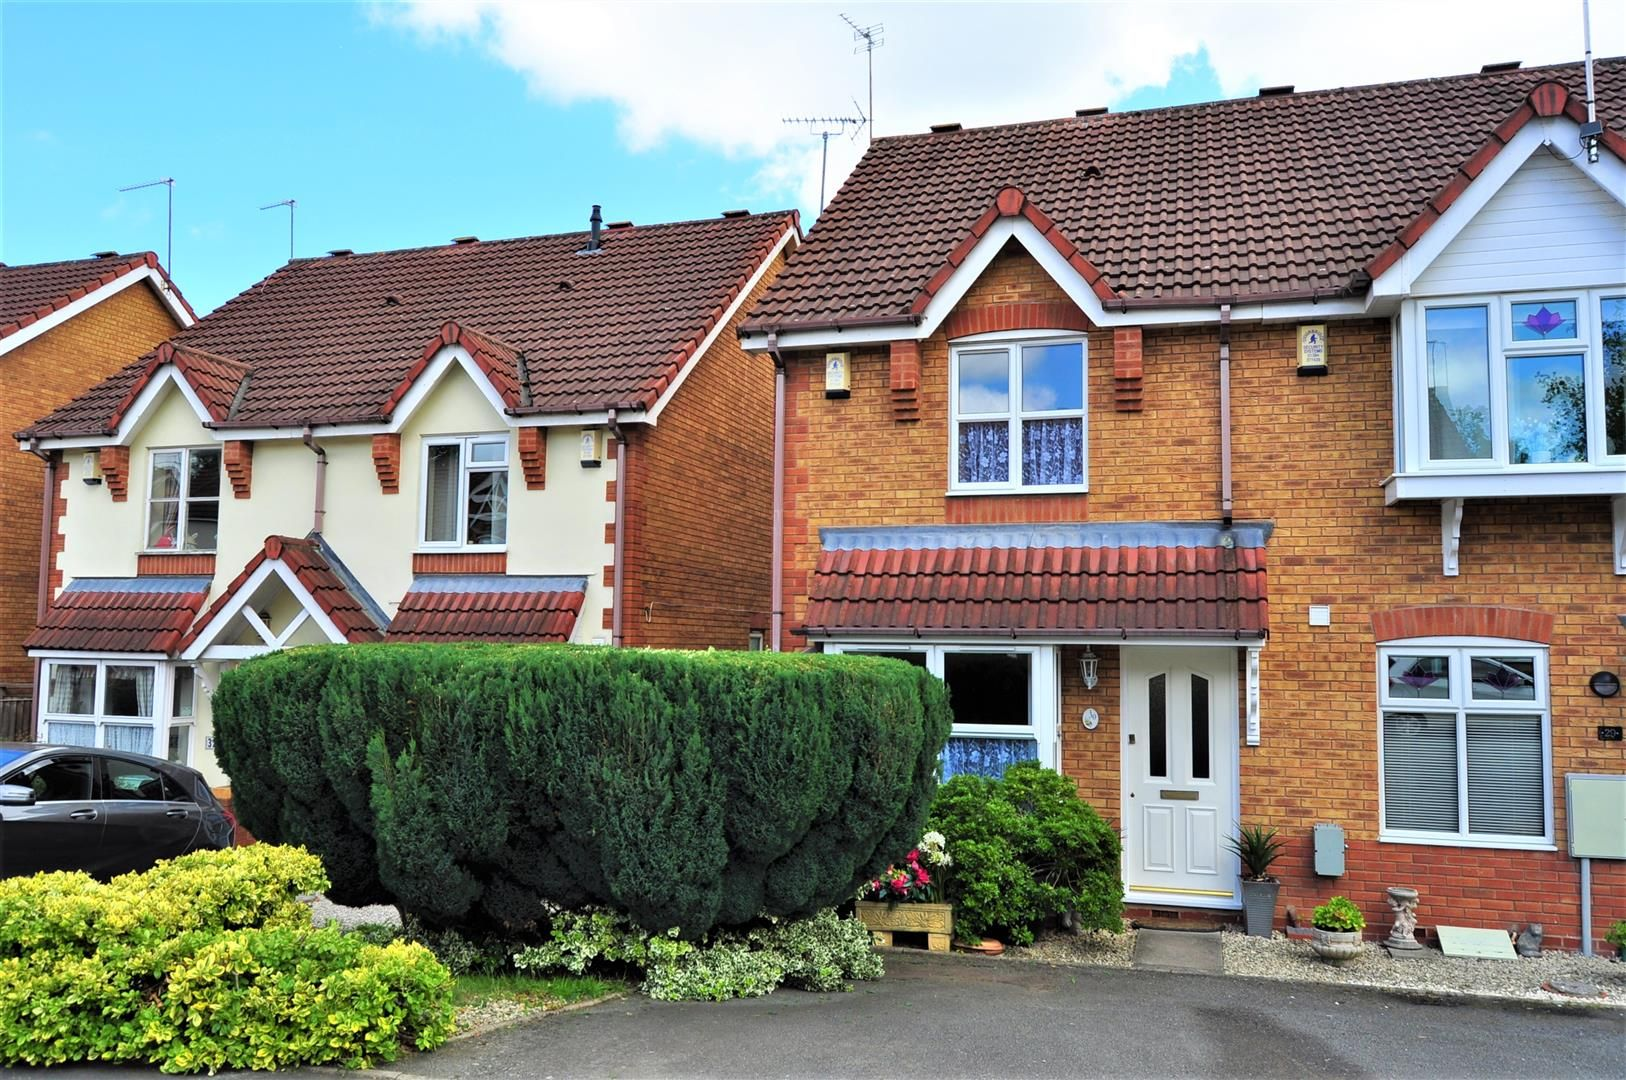 2 bed end-of-terrace for sale  - Property Image 1